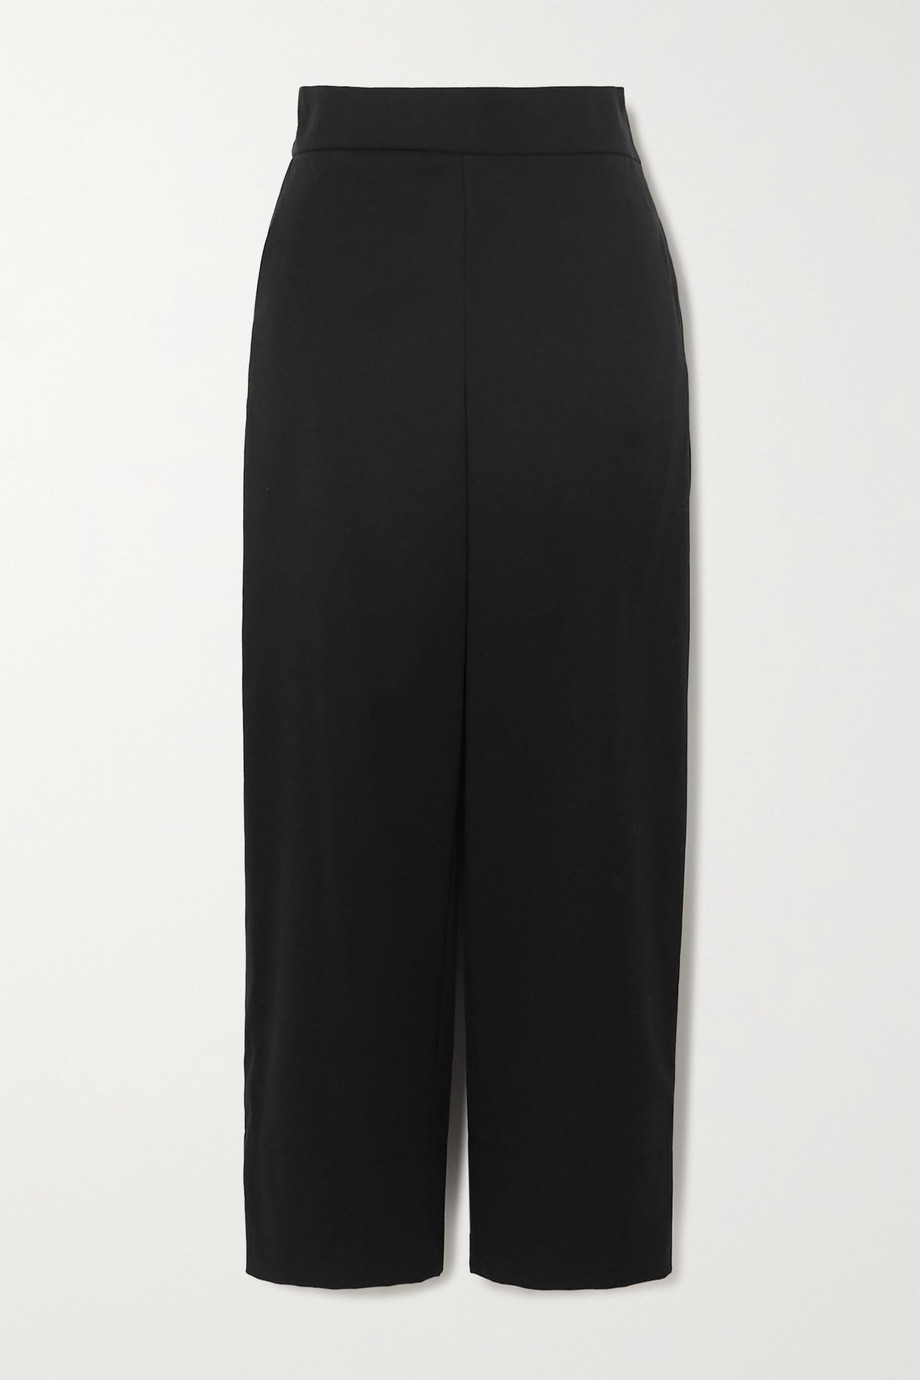 Akris Cropped cotton and silk-blend poplin wide-leg pants